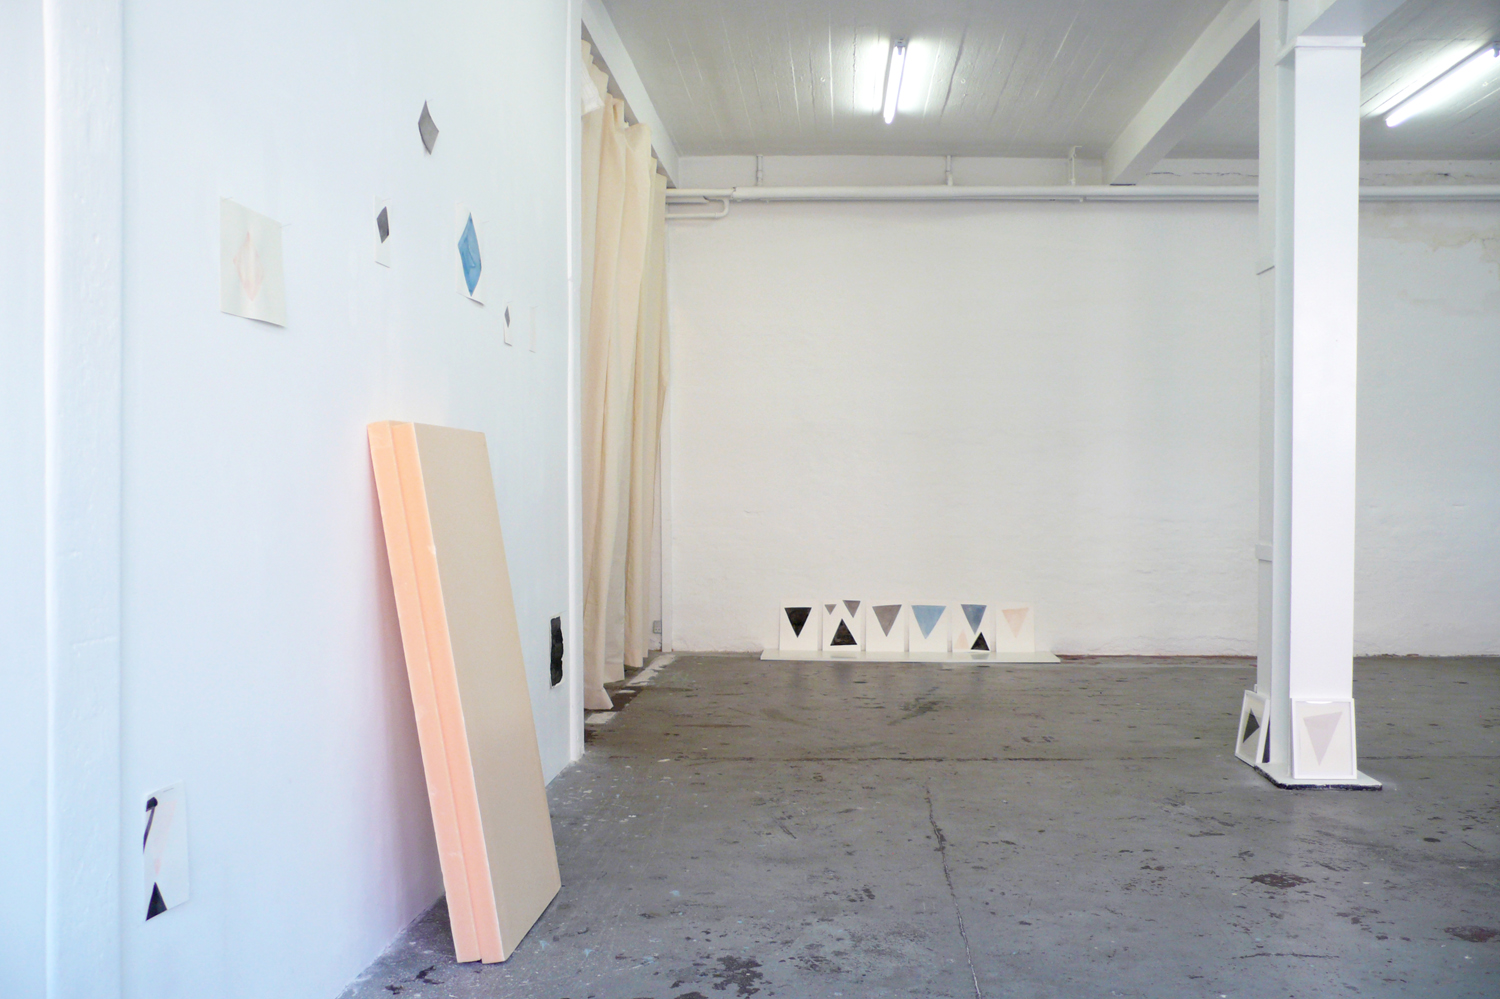 06Installation view Margrethe 4_o